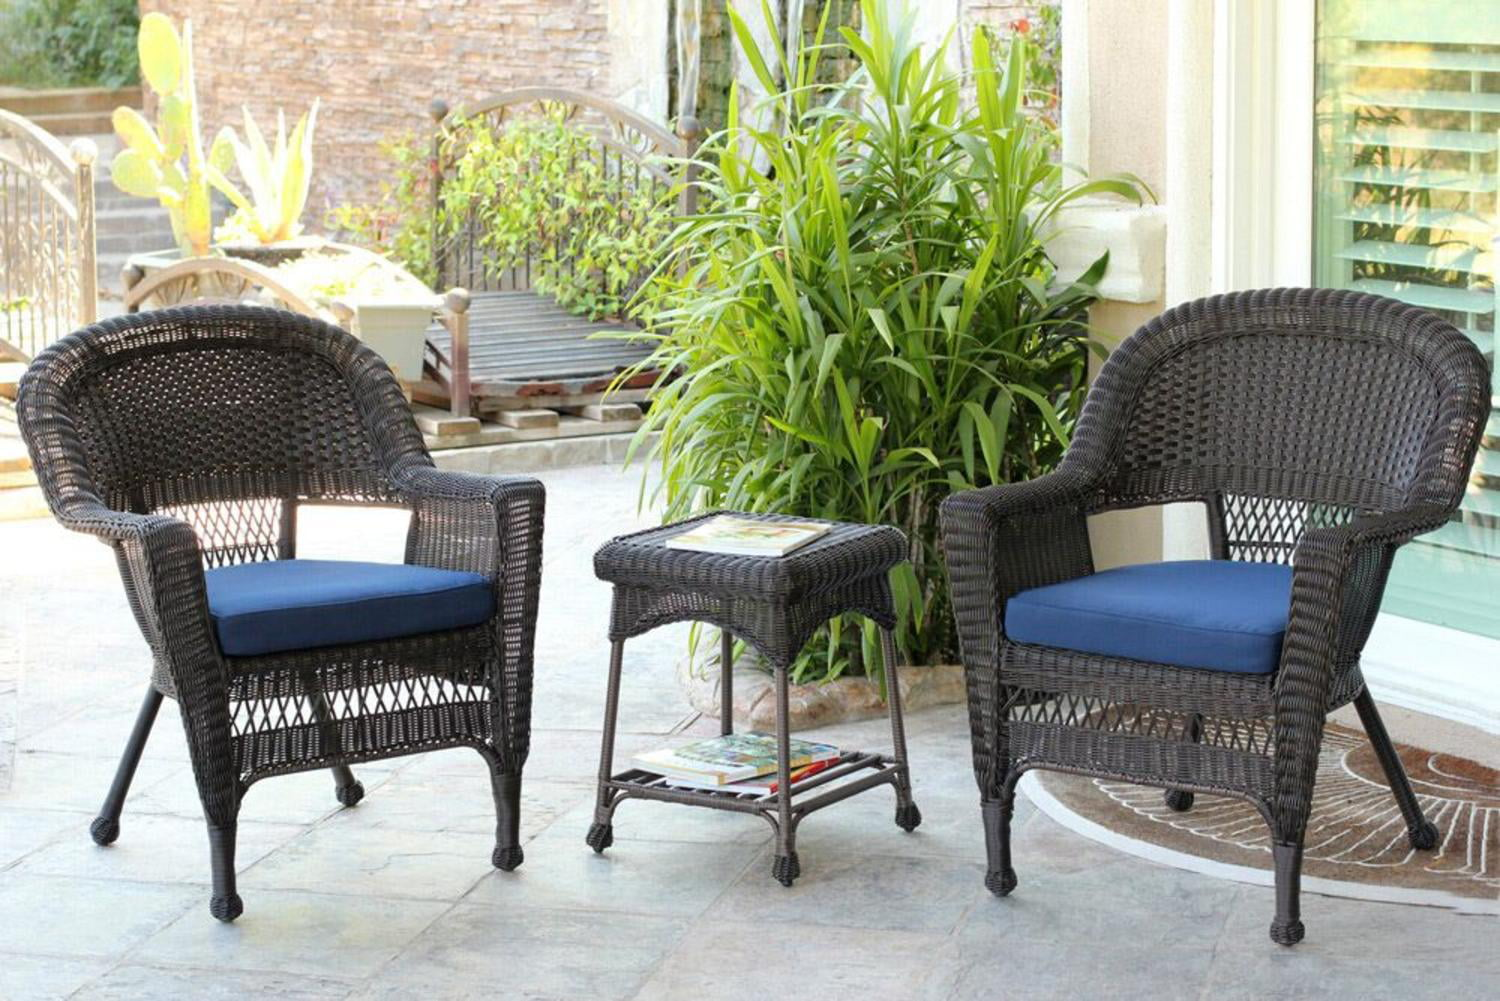 Costway 3 PCS Cushioned Outdoor Wicker Patio Set Garden Lawn Sofa ...